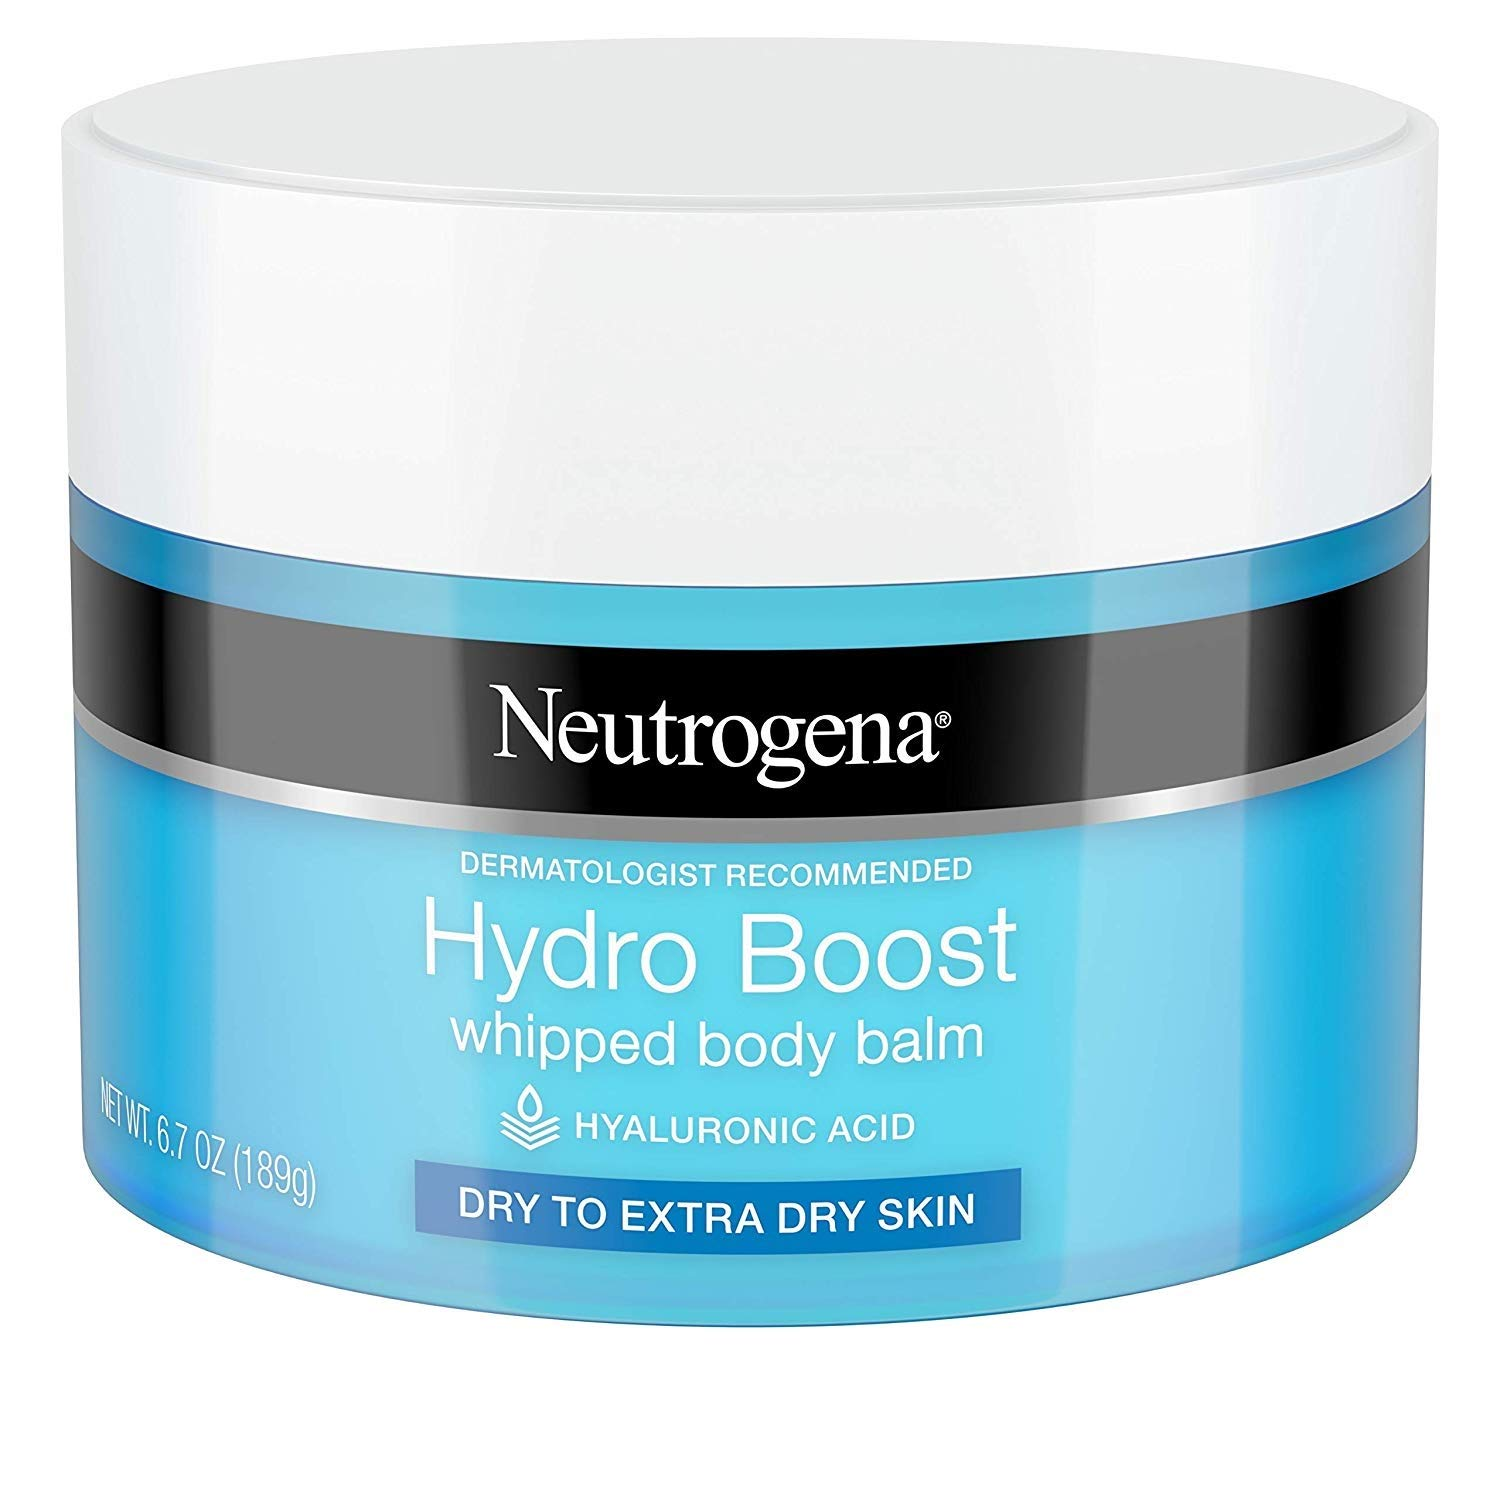 Hydro Boost Hydrating Whipped Body Balm, 6.7 oz (Pack of 2)